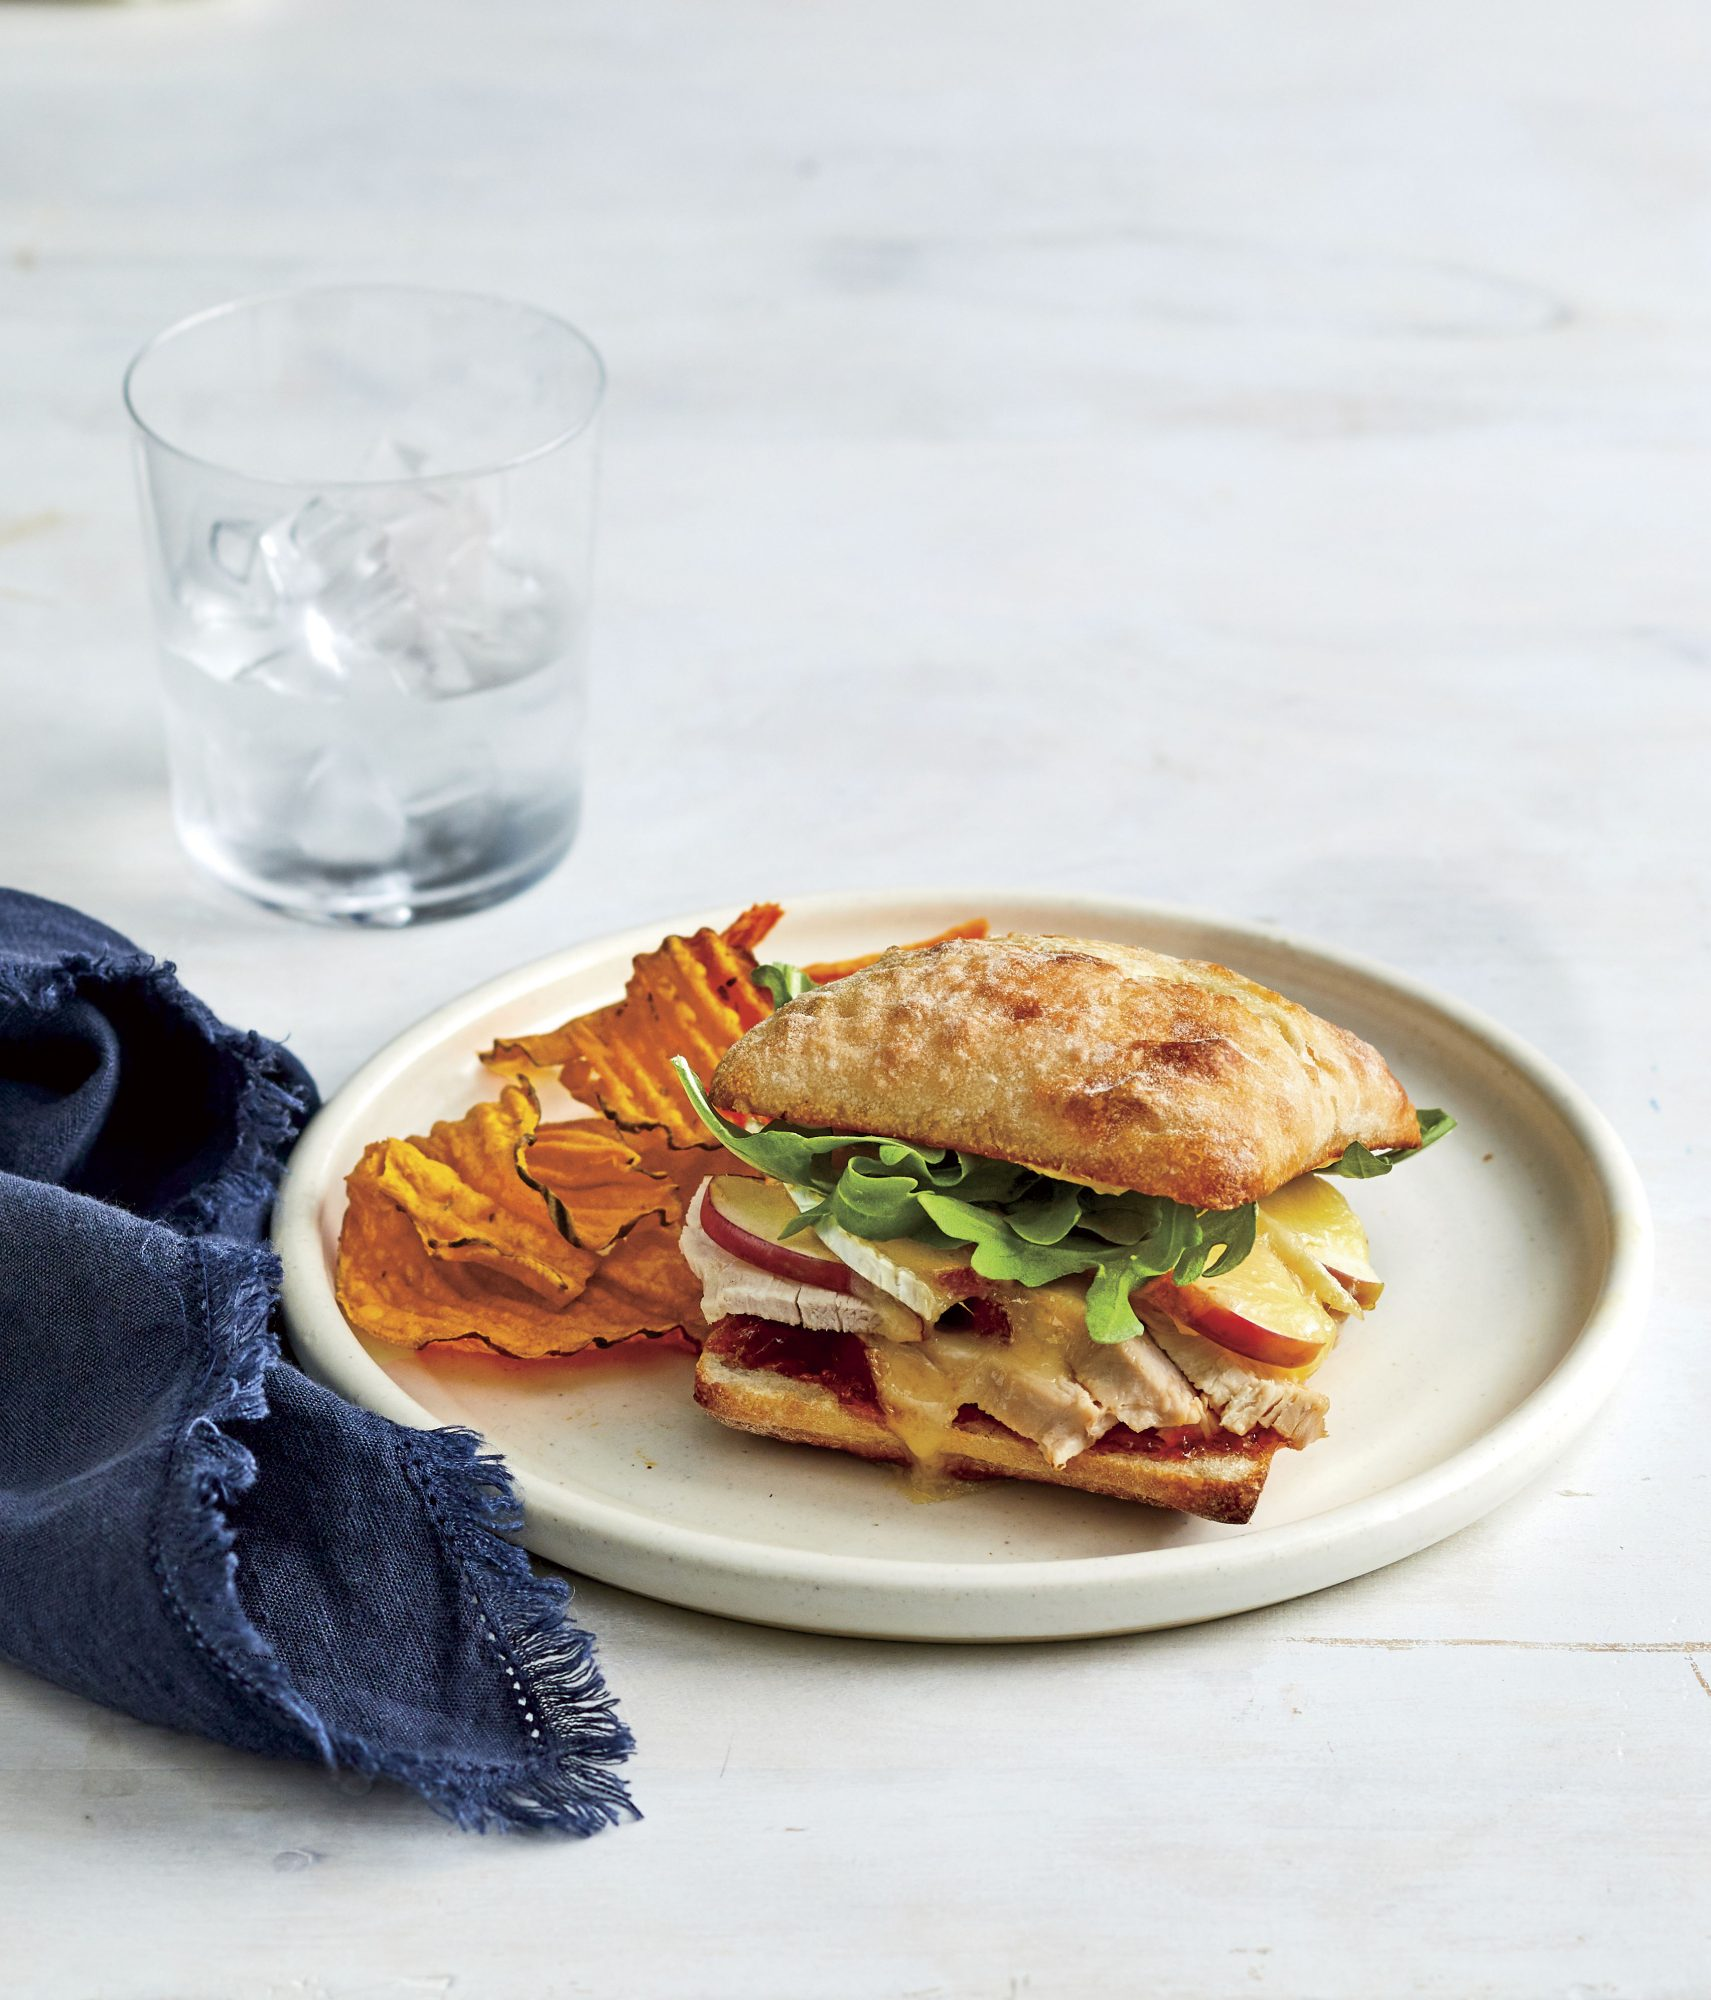 Turkey, Apple, and Brie Sandwich Recipe